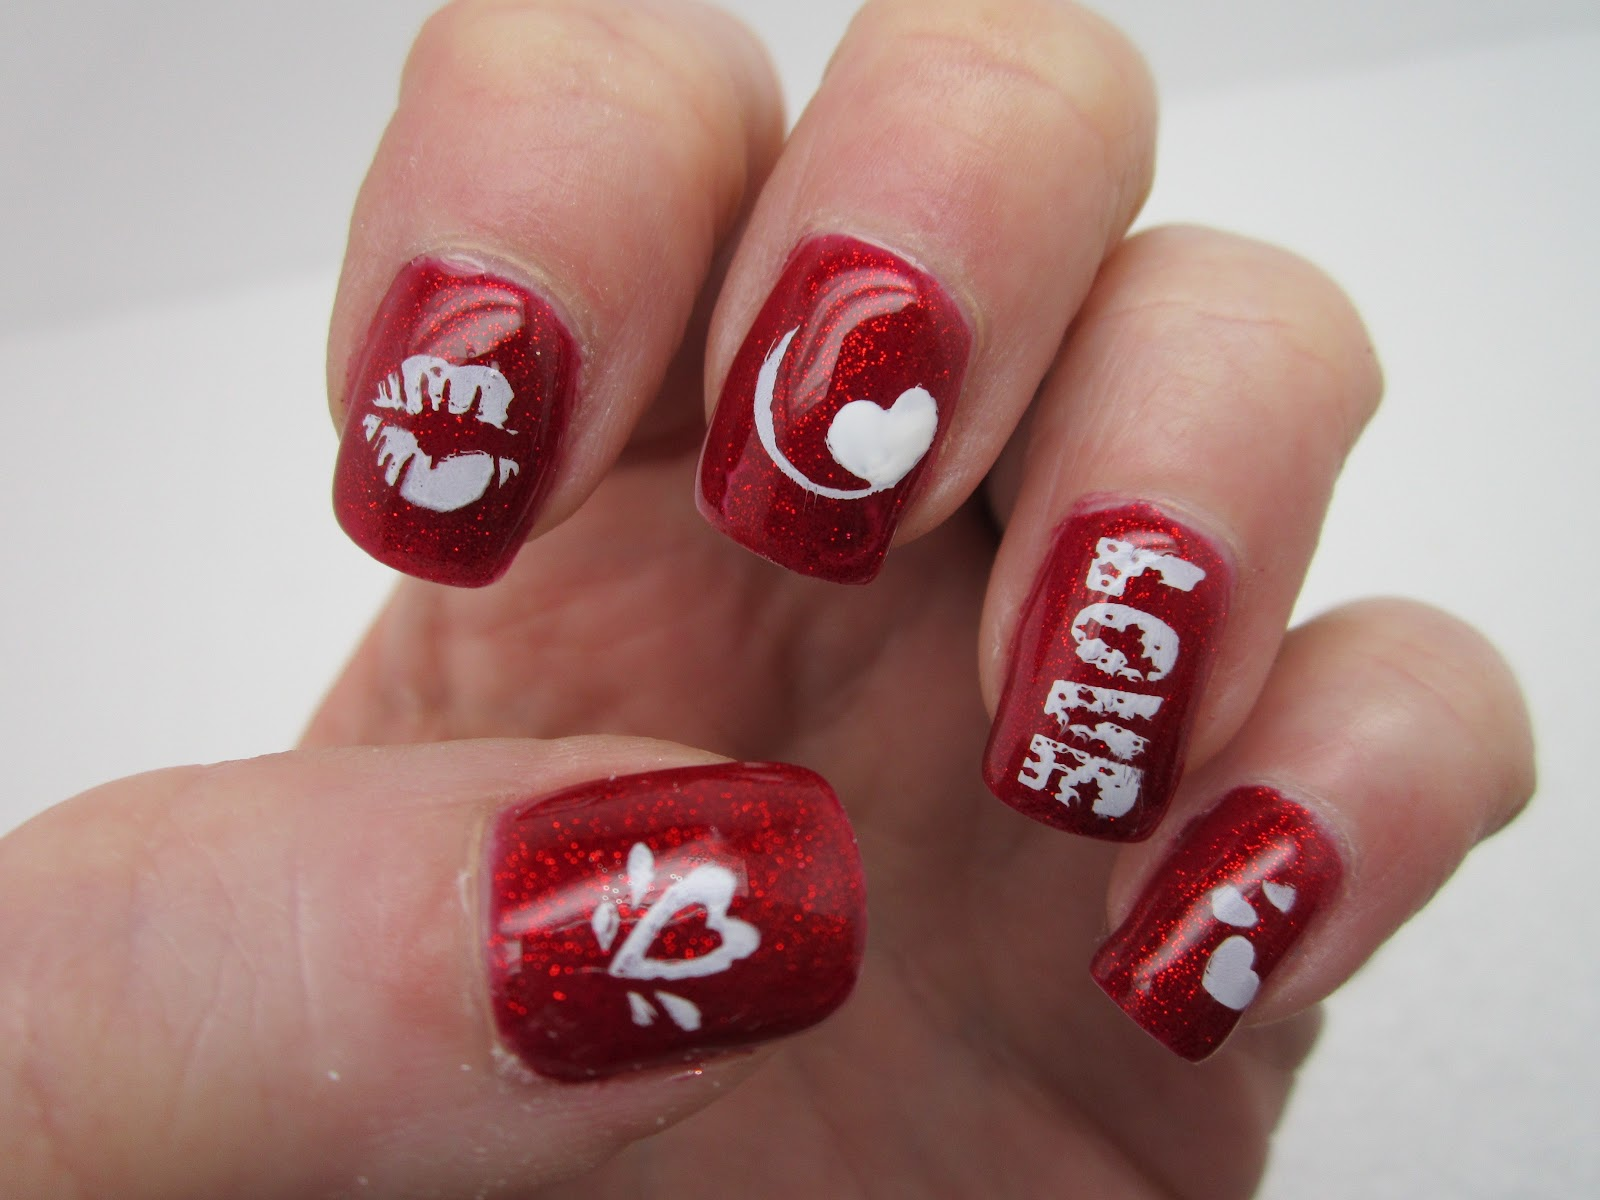 Nail art designs for valentines